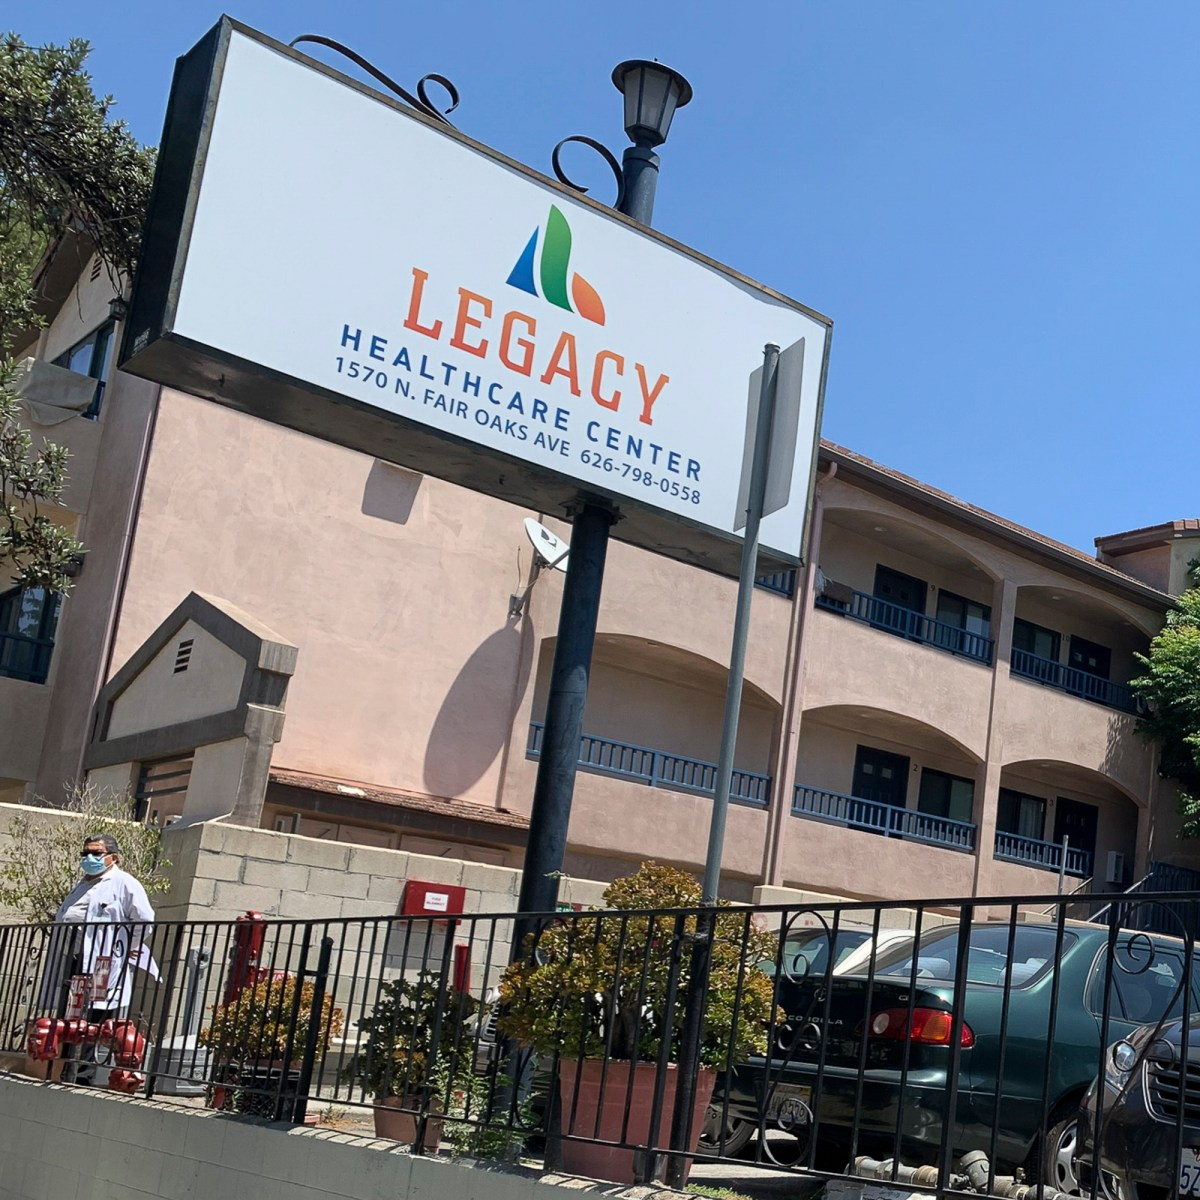 State health officials took control of the Rose Garden and Legacy Healthcare nursing homes in Pasadena after learning that the home's operator couldn't pay rent or staff, as the coronavirus pandemic loomed.. Photo by Karlene Goller for CalMatters